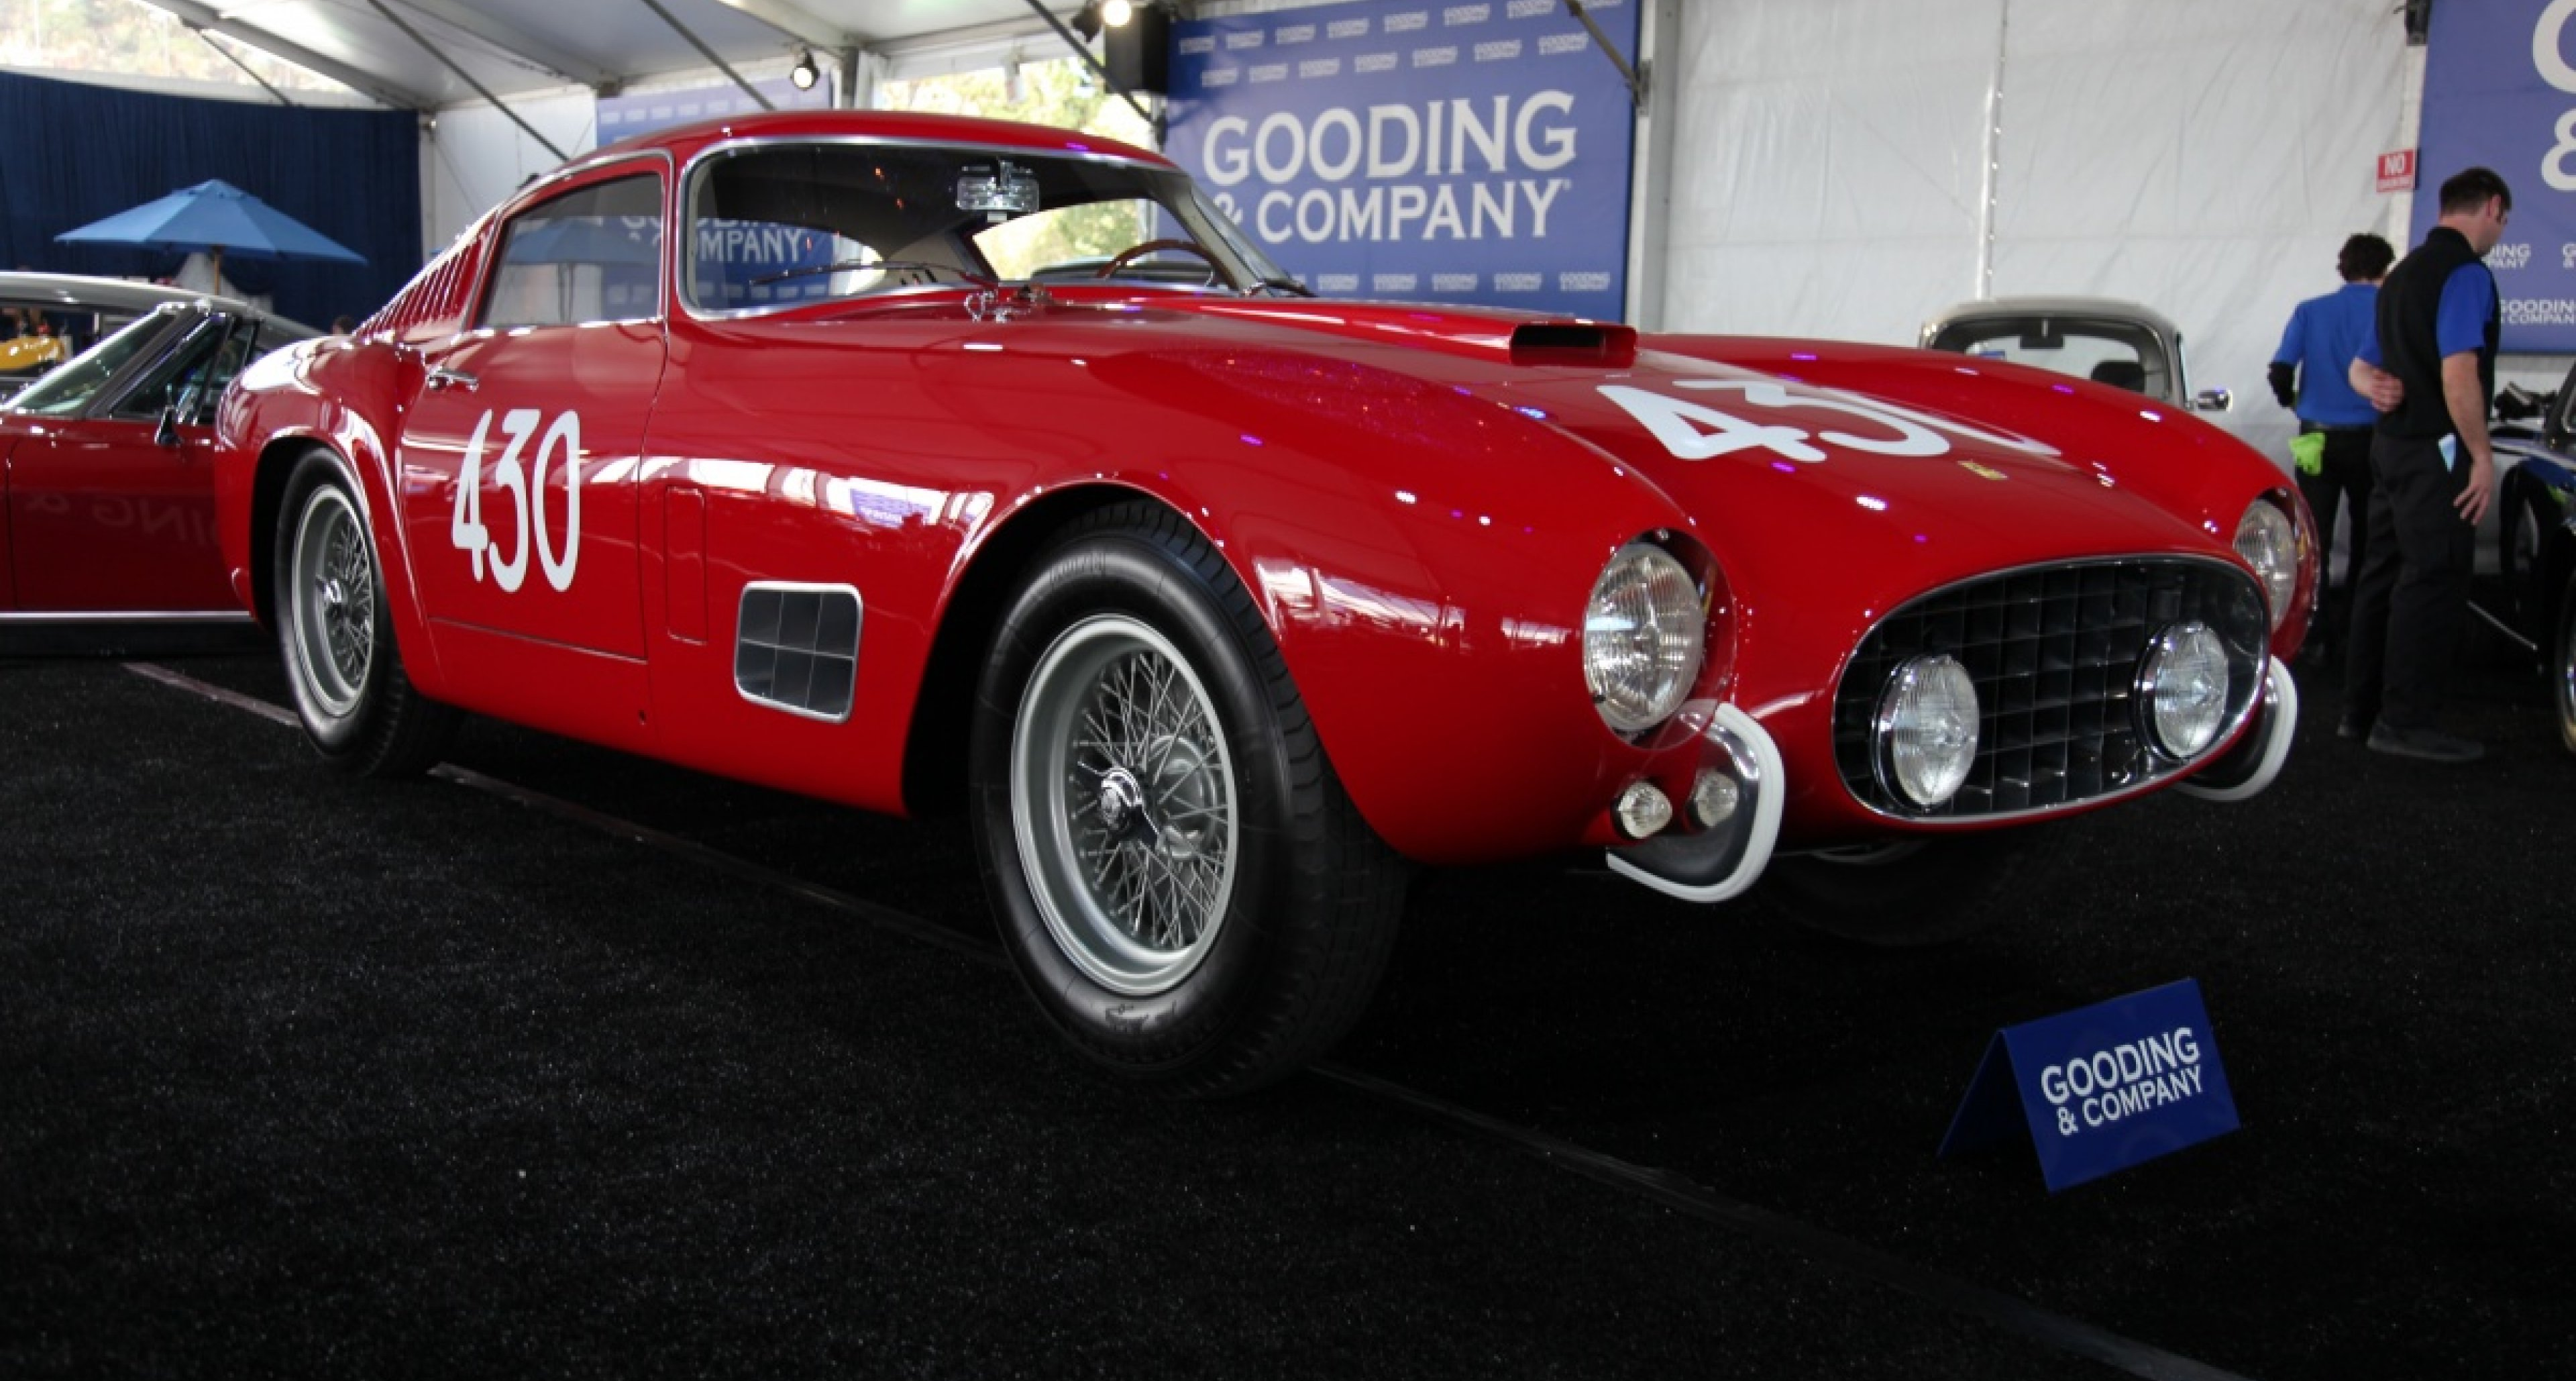 1957 Ferrari 250 GT Tour de France USD 9,460,000